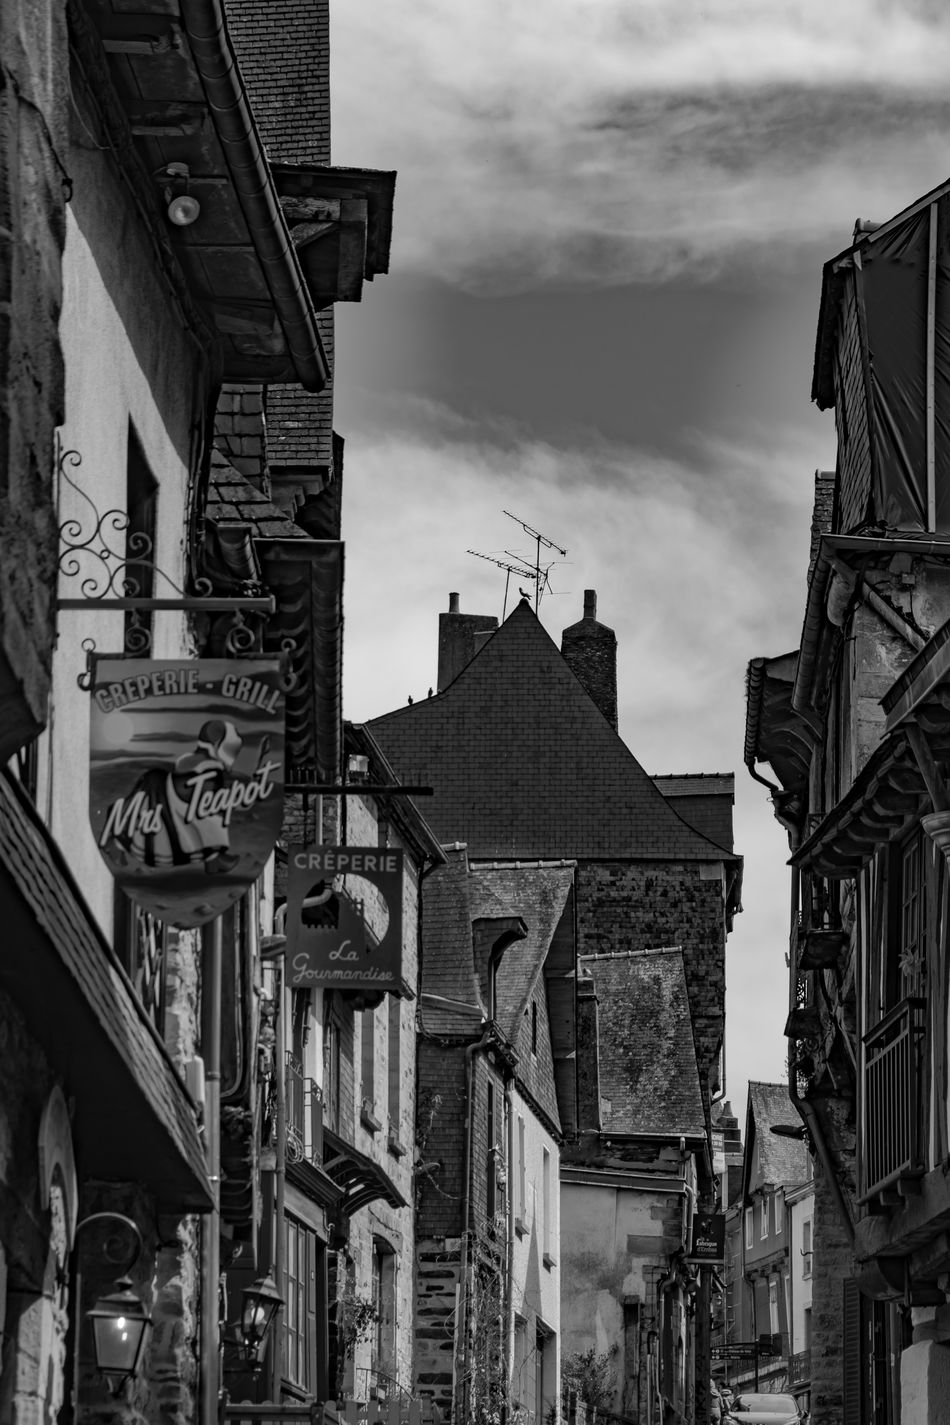 Architecture Black And White Black And White Photography Black&white Blackandwhite Blackandwhite Photography Built Structure City Cloud Cloud - Sky Historical Historical Building Historical Sights Outdoors Promofoto PromoPhoto Sky Torce Travel Destinations